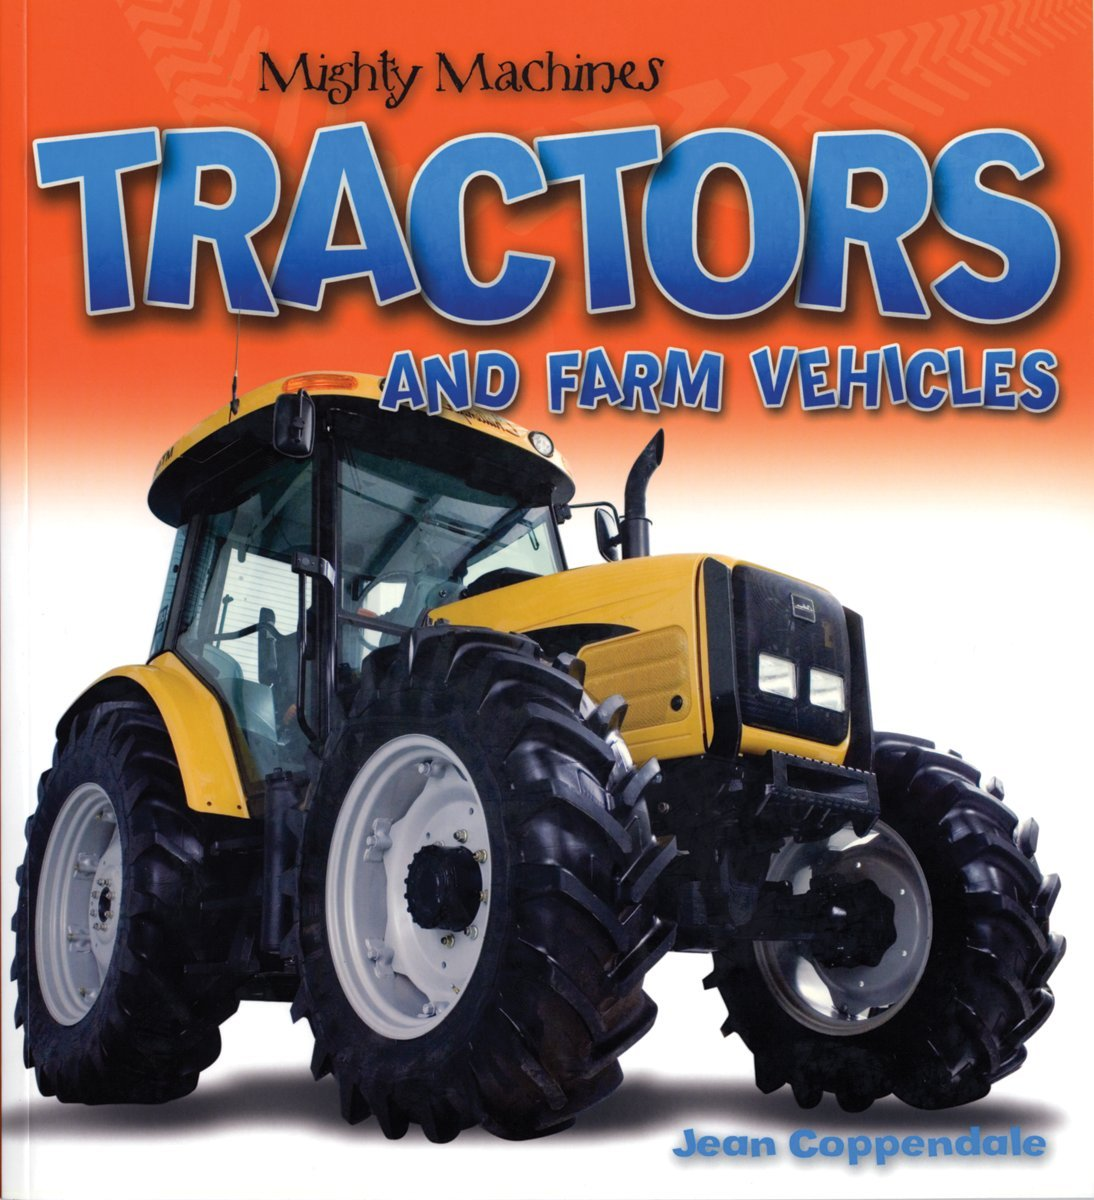 Tractors and Farm Vehicles (Mighty Machines) PDF